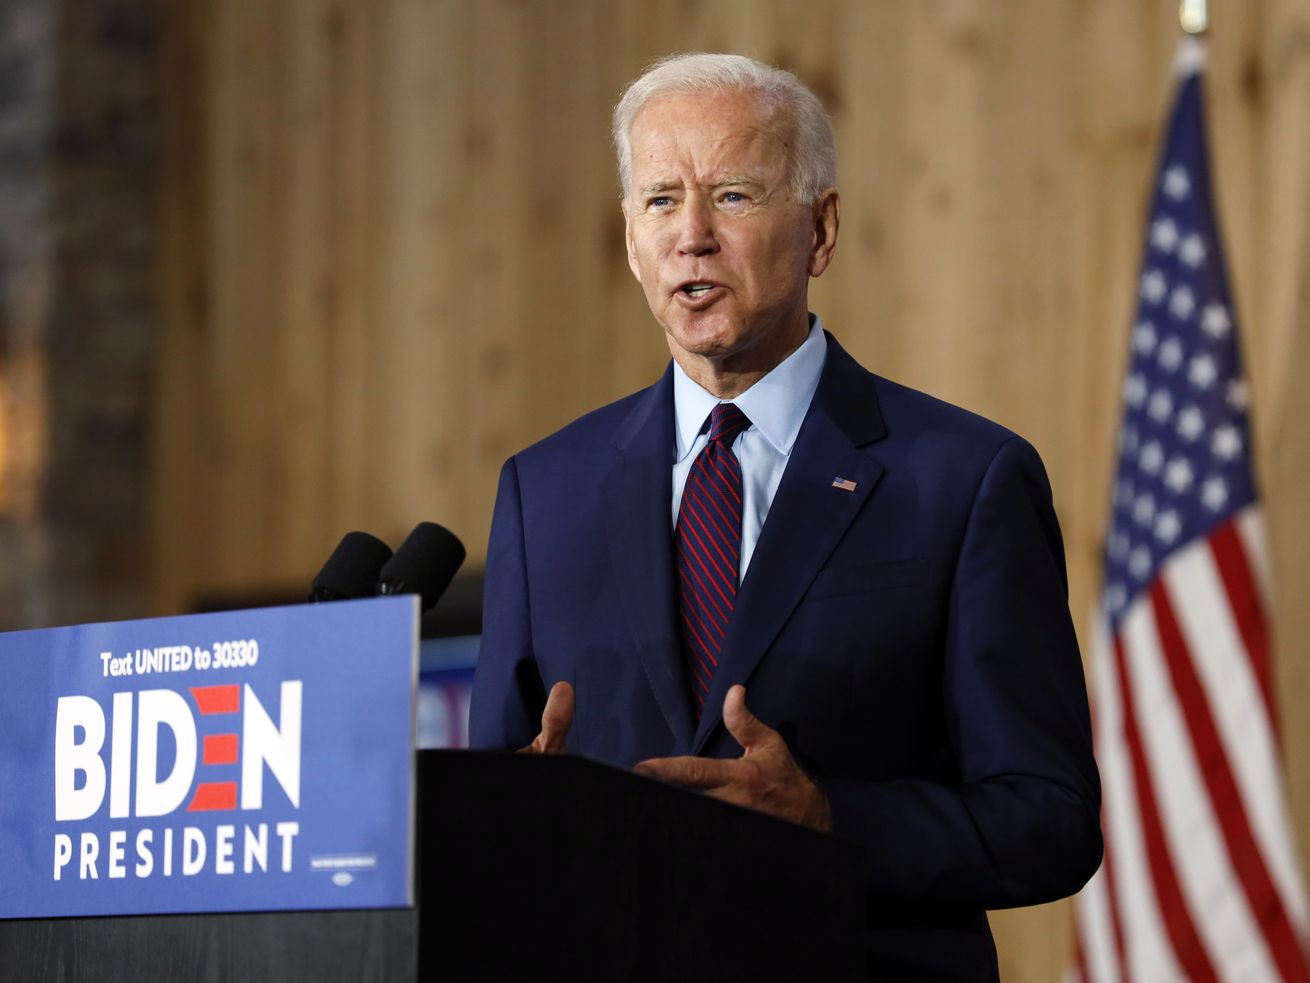 Joe Biden Democratic presidential candidate 2020 primary